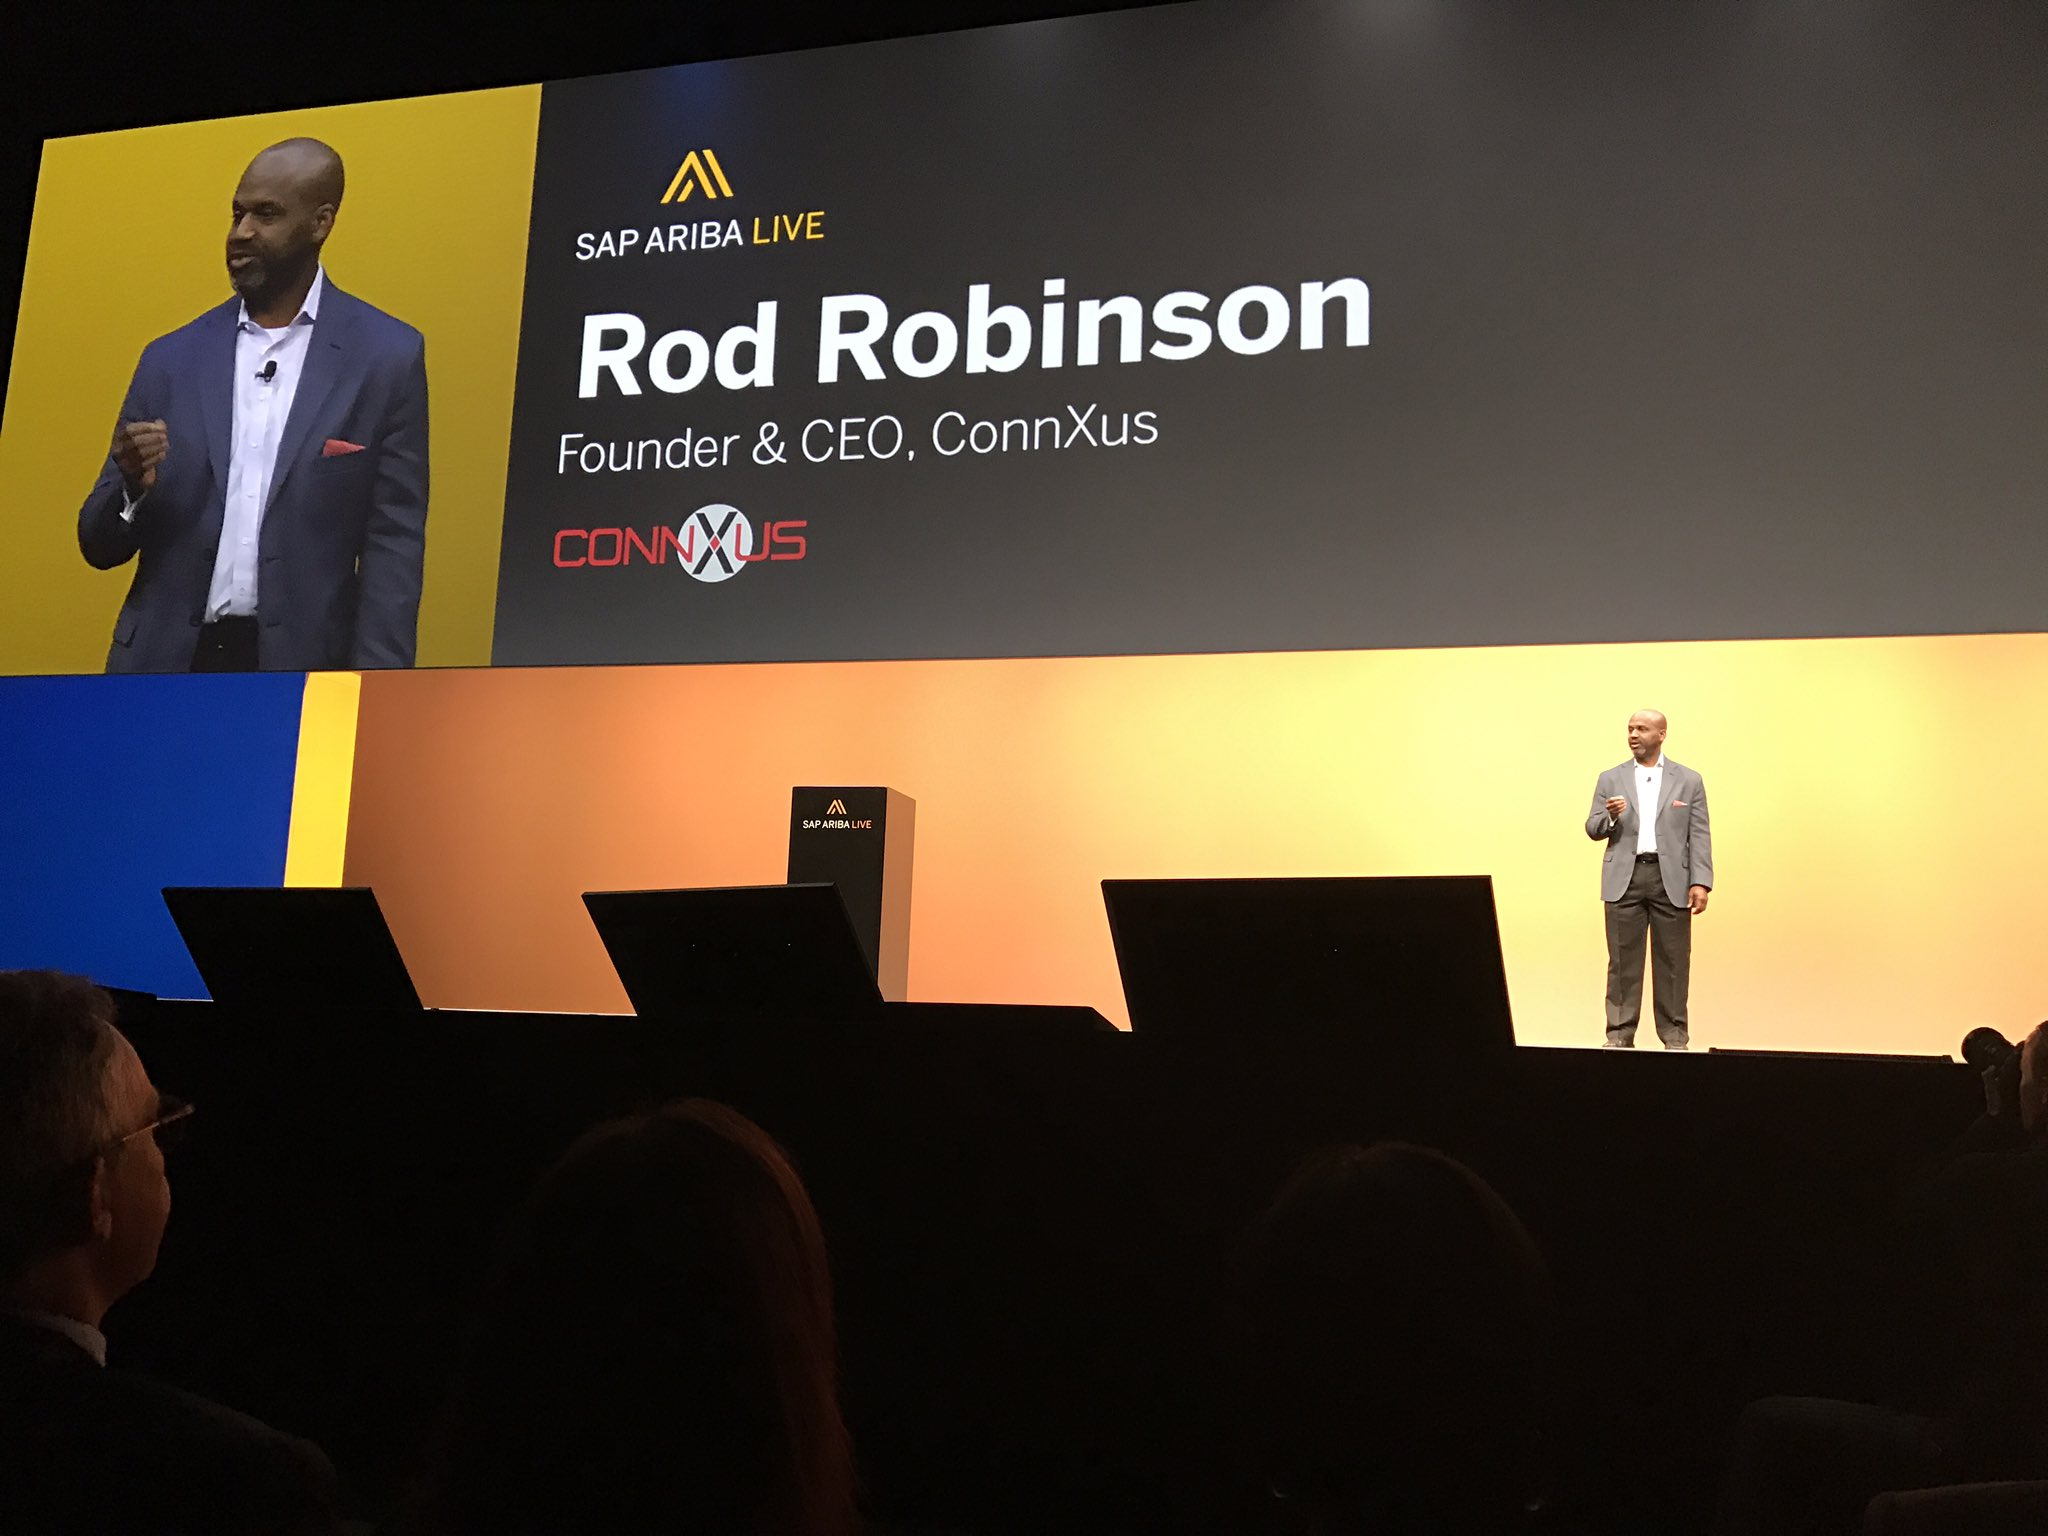 """""""Together we will make inclusive procurement awesome"""" Making global supply chains more diverse & inclusive @ConnXus #SAPARIBALIVE https://t.co/HEkjekfLv4"""